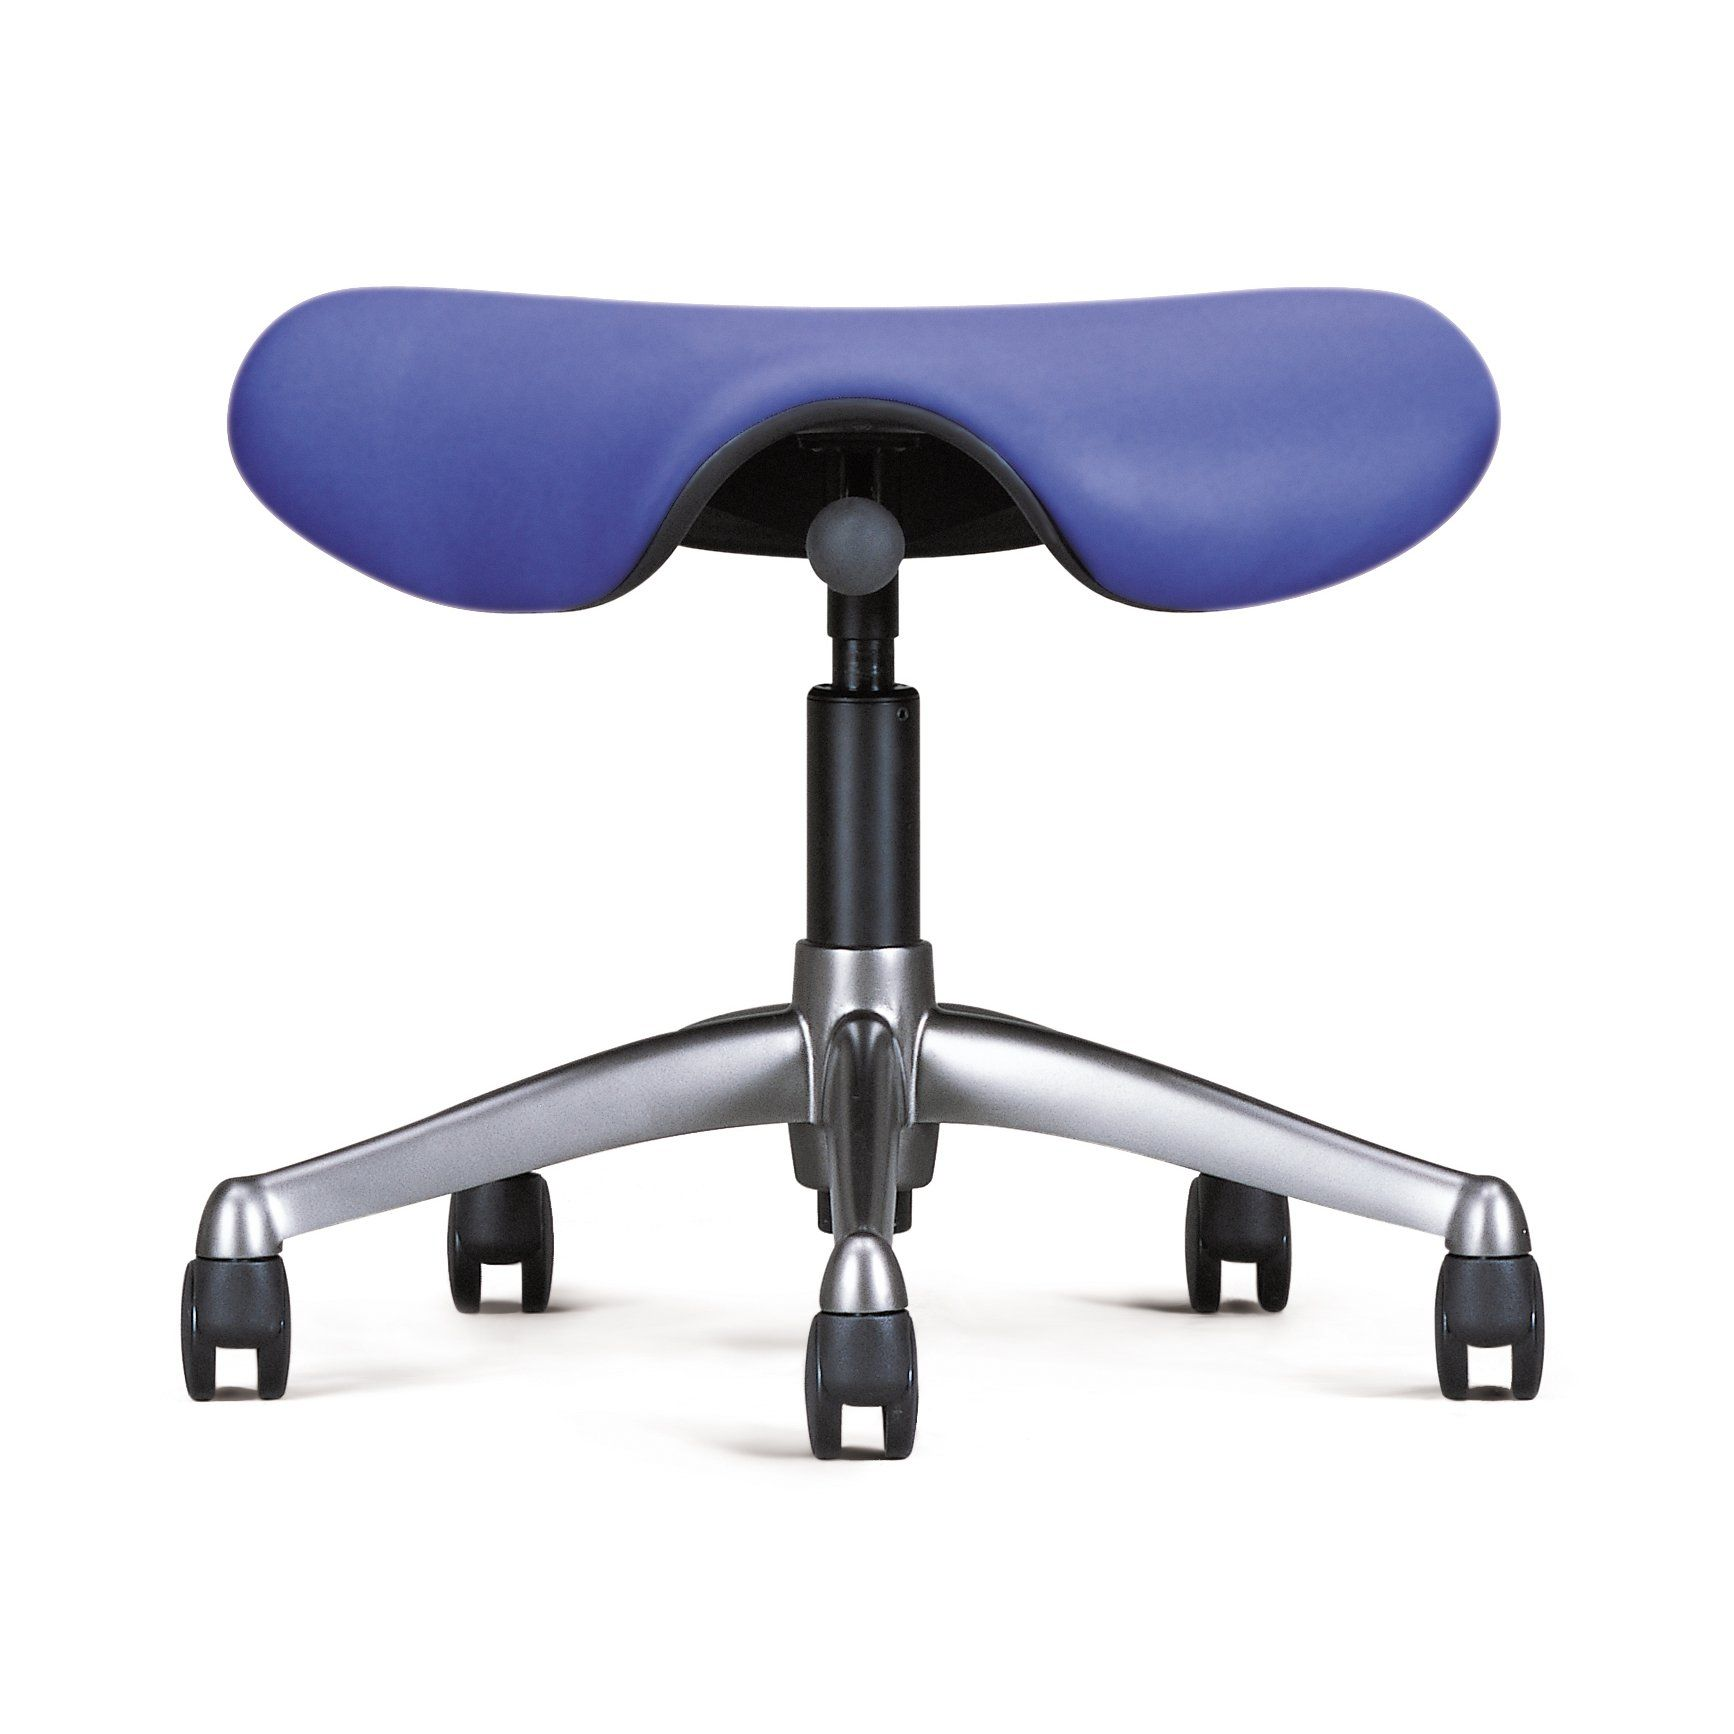 Saddle Chair Enjoy A Healthy Back And Horse Riding Like Journey With Such A Chair Saddle Chair Office Stool Office Chair